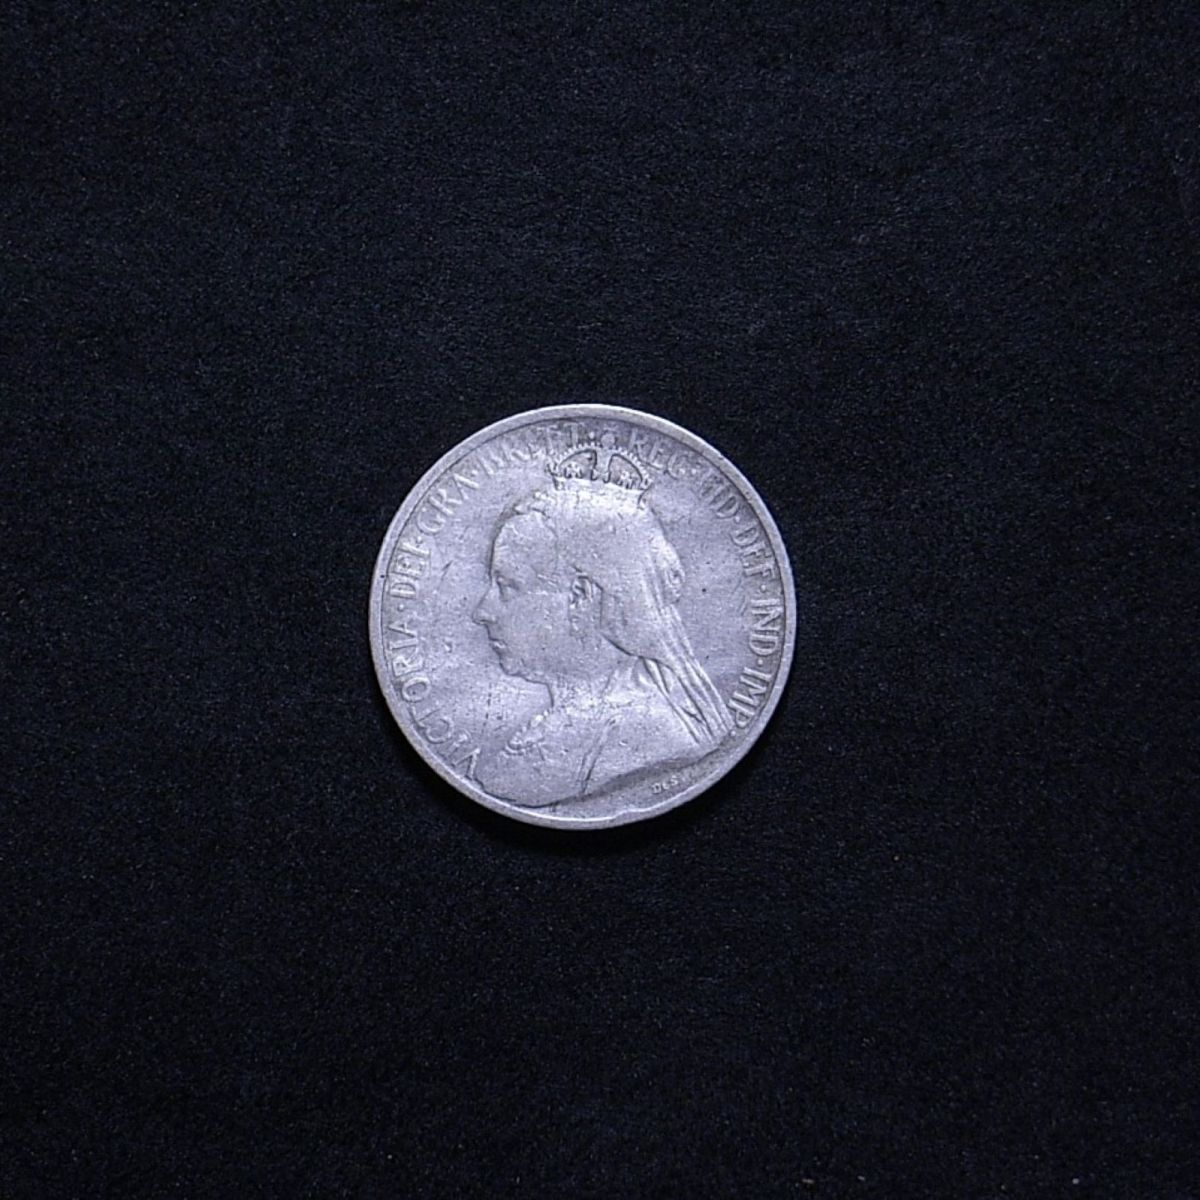 Cypriot 1901 9 piastres obverse showing the coin's overall appearance